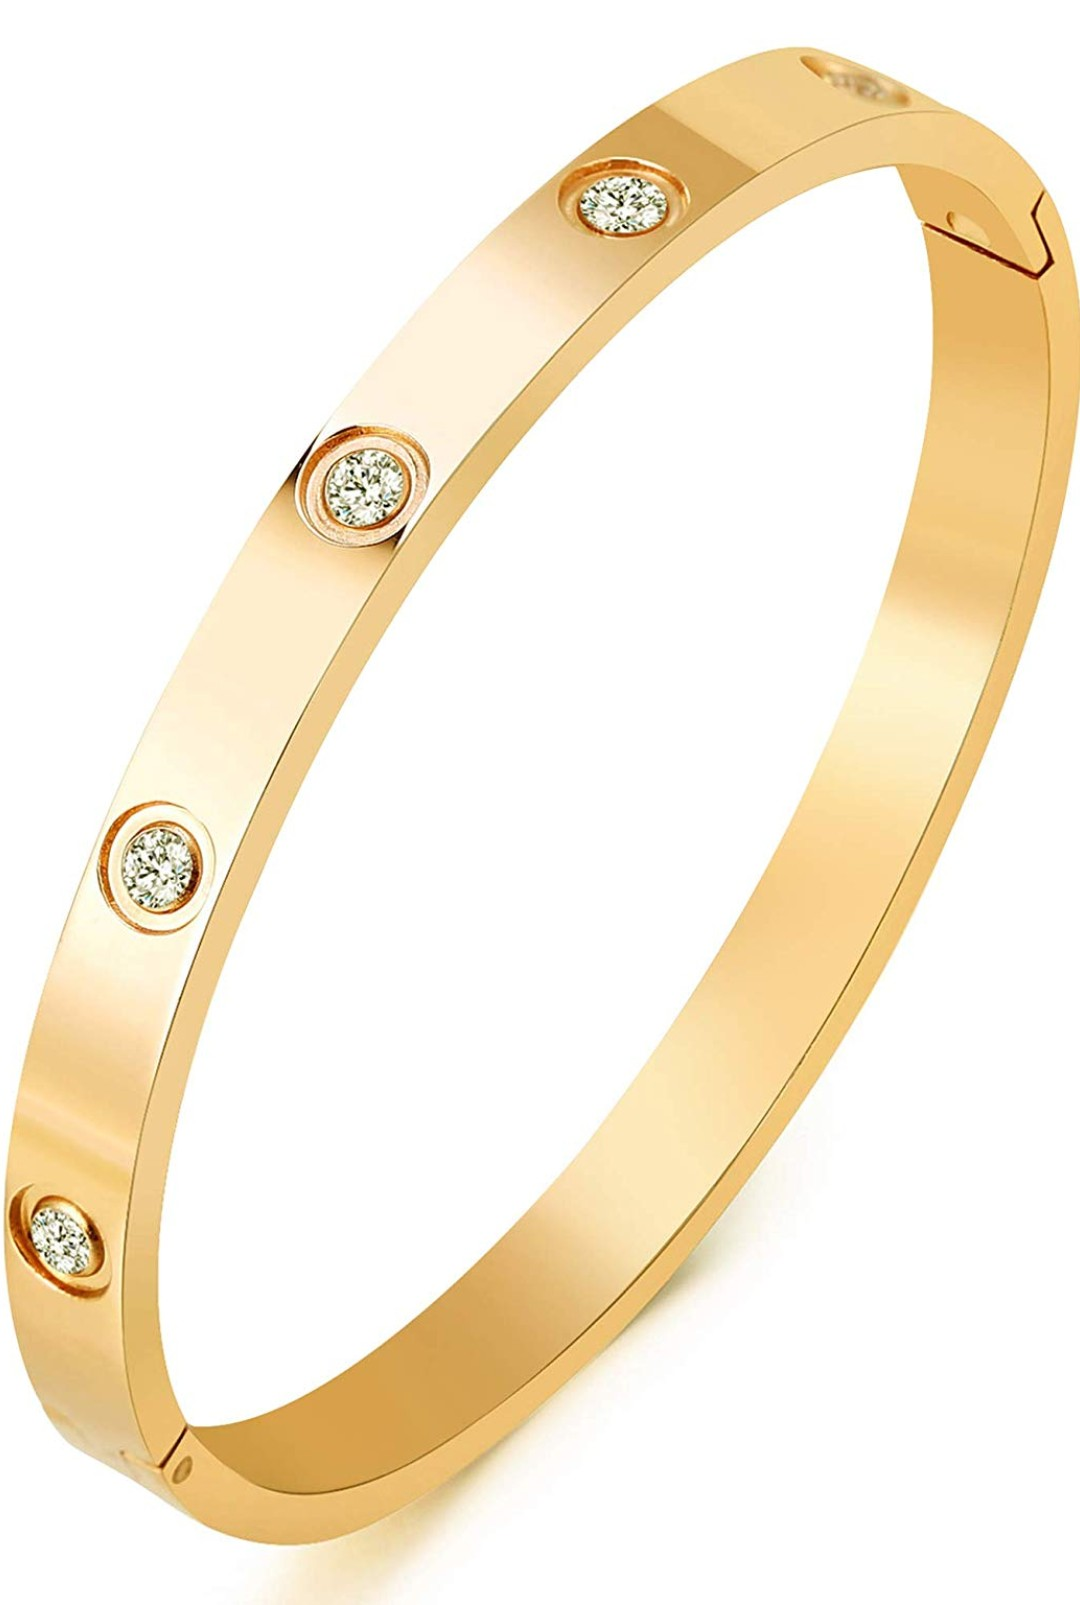 The Best Cartier Dupes on Amazon - Your ultimate guide to Cartier dupes! Cartier love bracelet dupes, Cartier nail bracelet dupes, Cartier Juste Un Clou bracelet dupes, Cartier inspired bracelets on Amazon